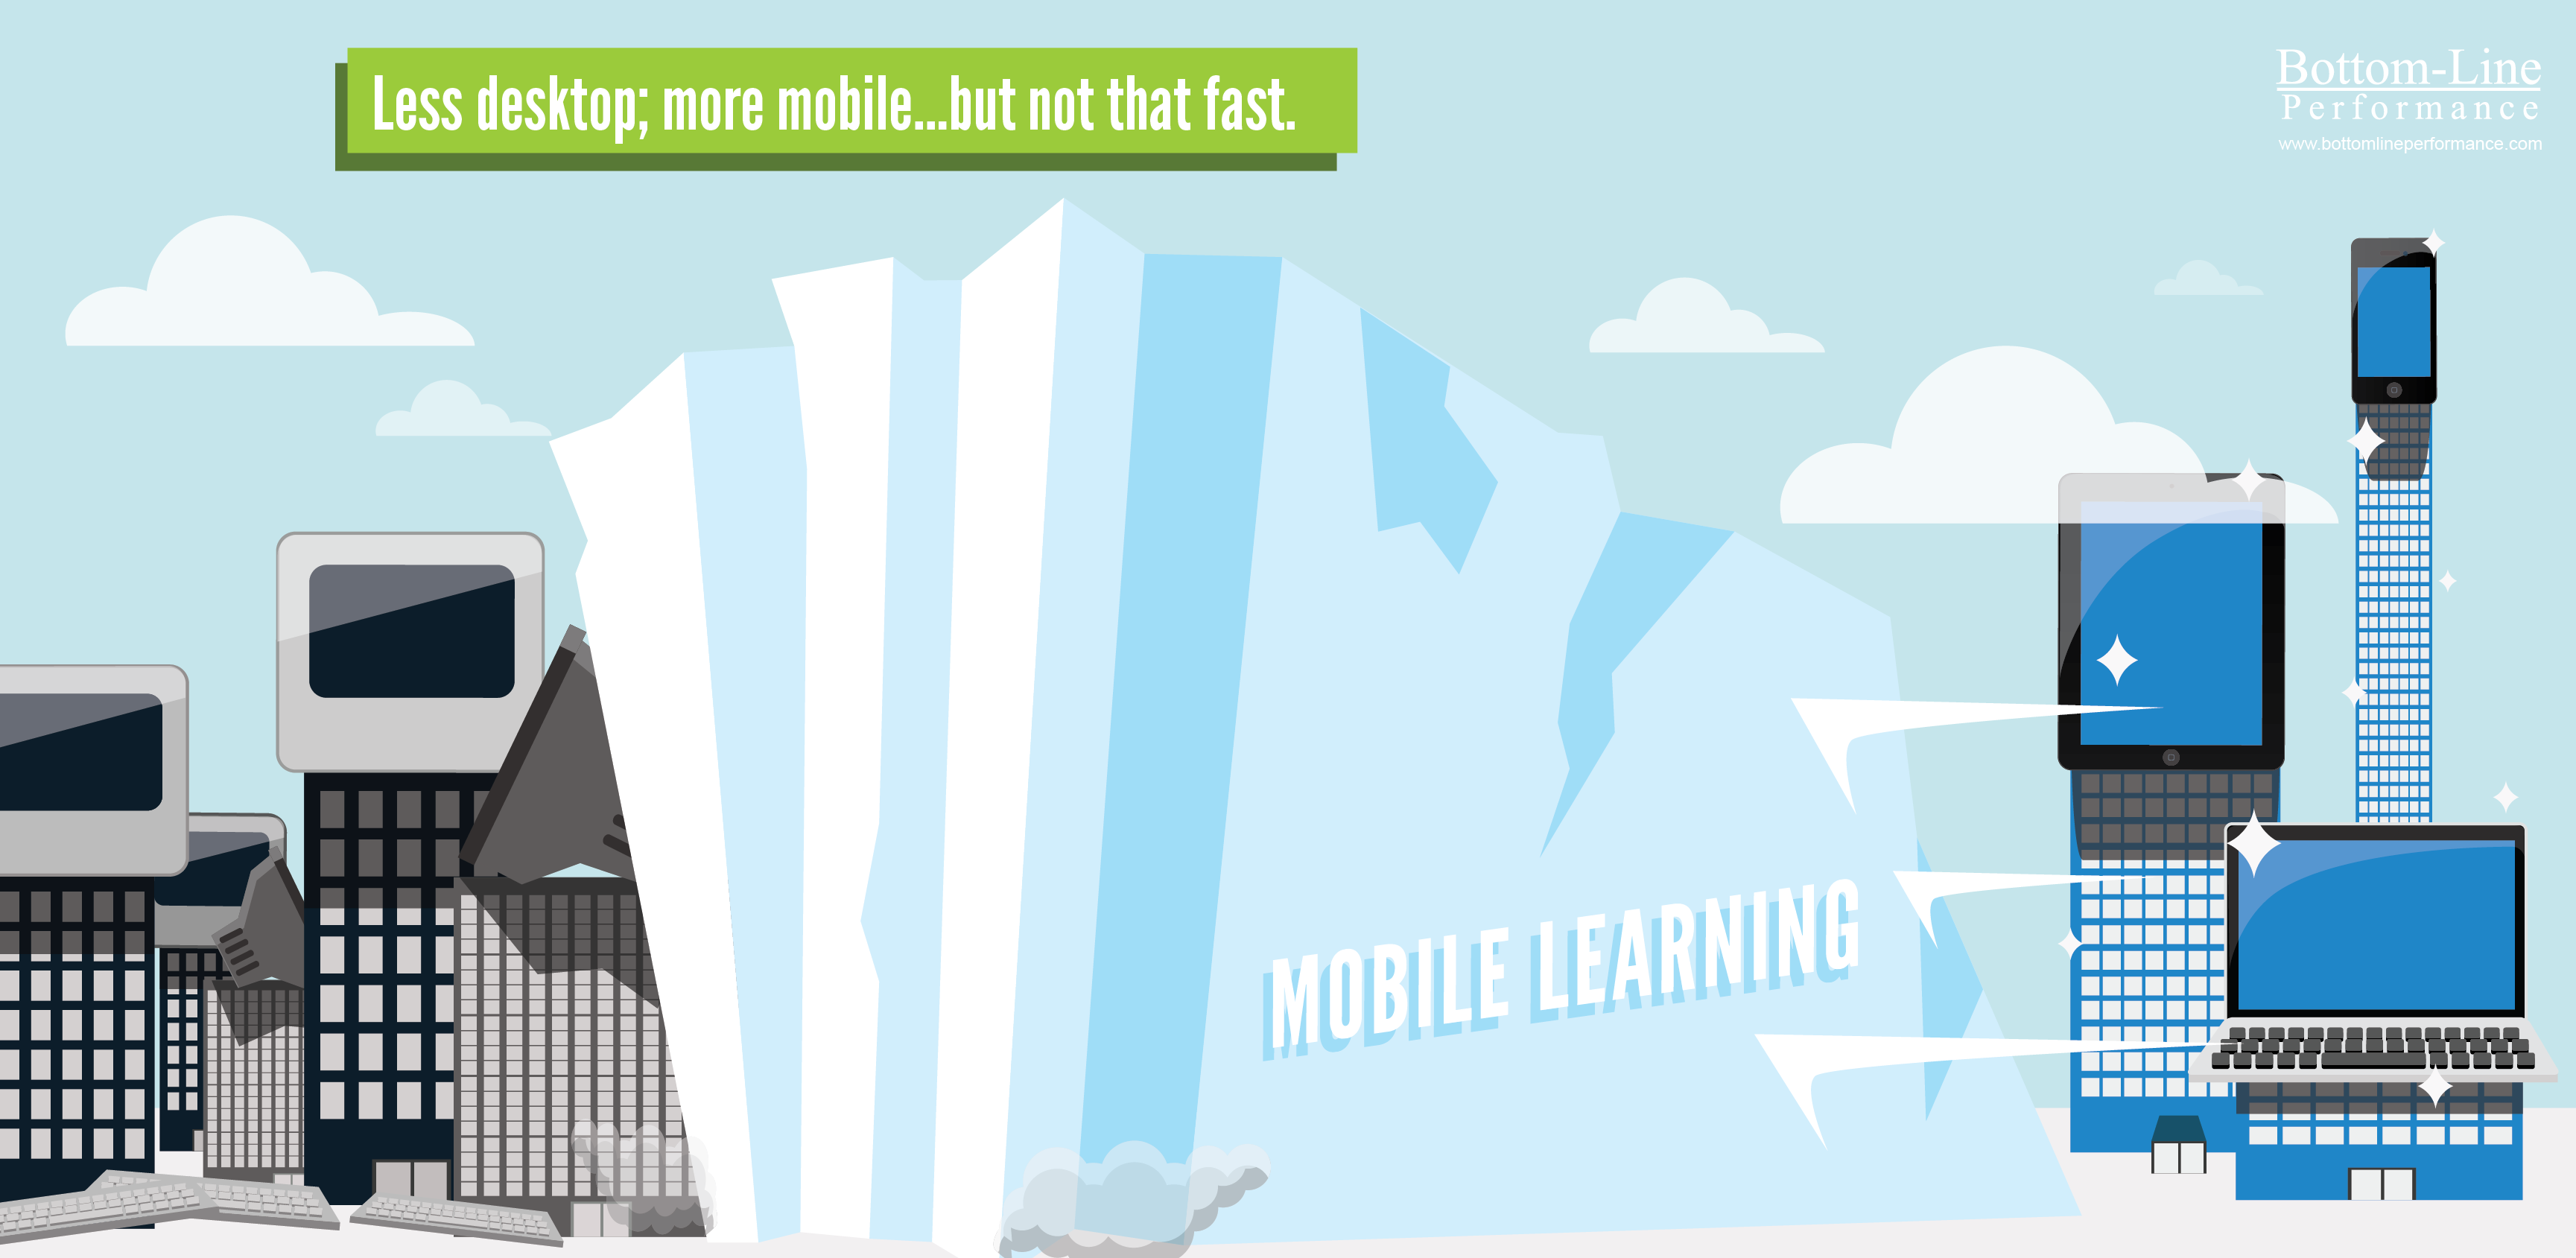 Mobile Learning - Glacier, Not Waterfall